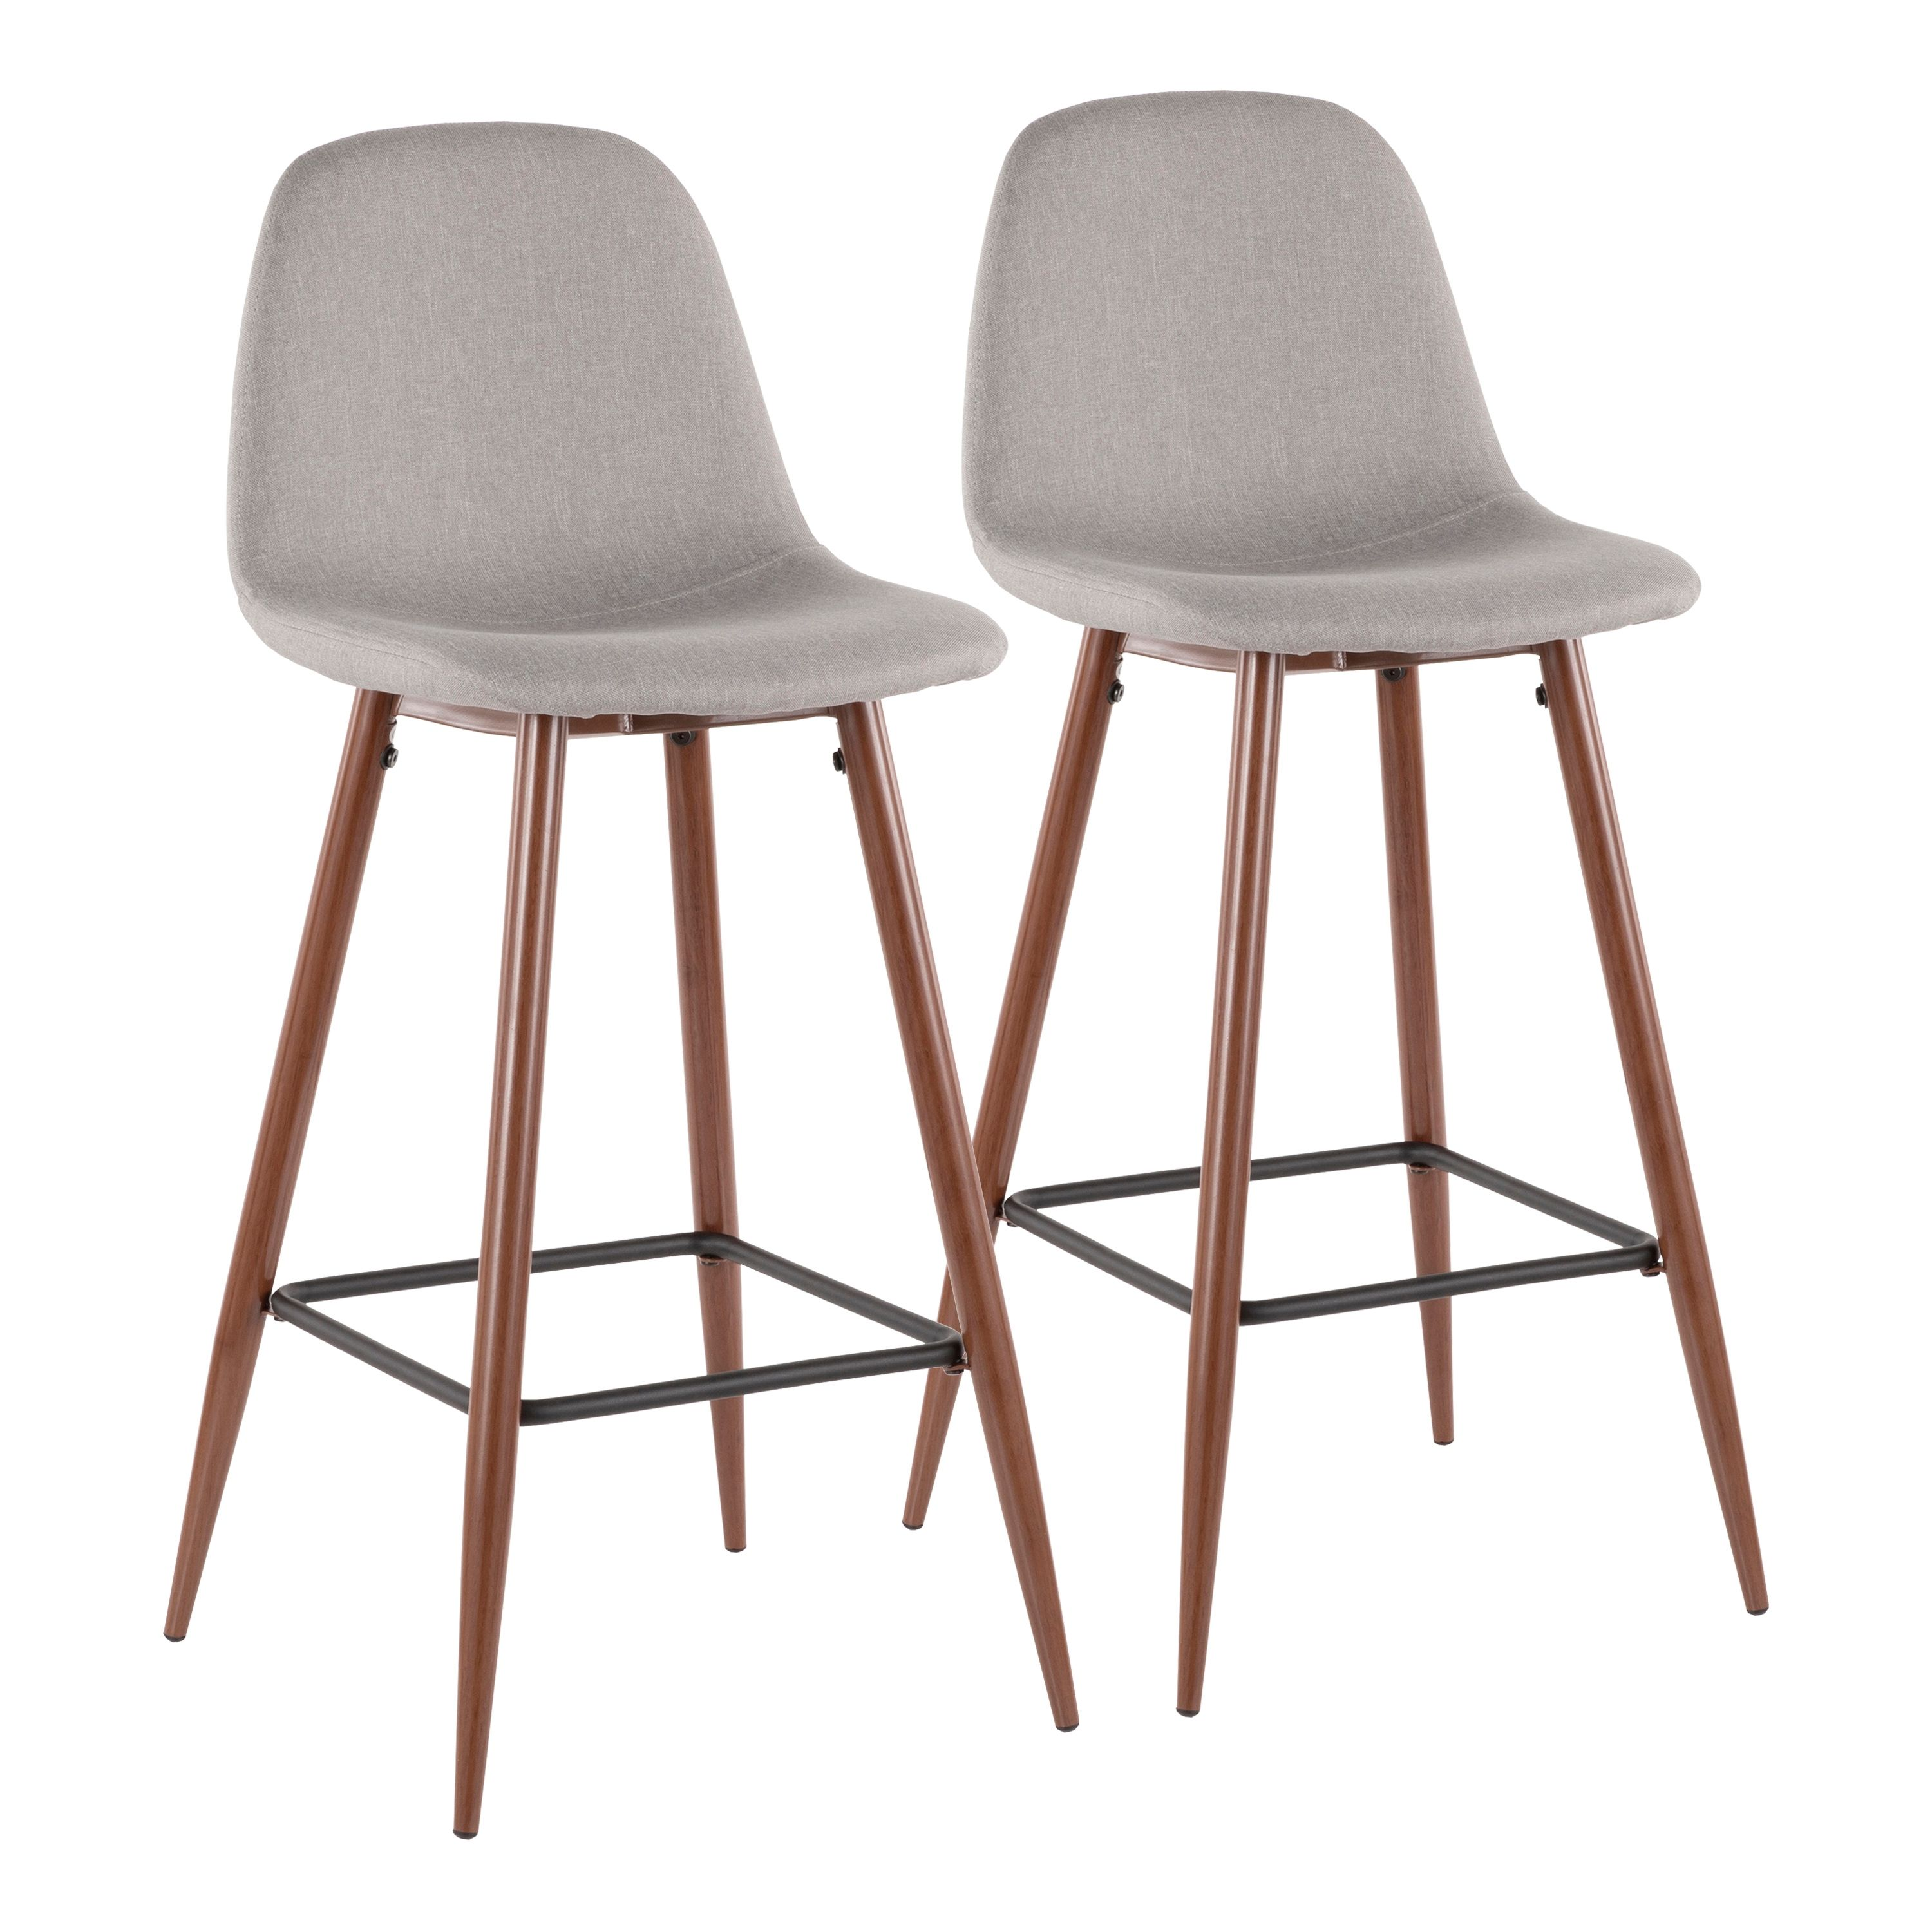 finest selection 27f09 8fb10 Trevi Barstool (Set of 2), Yellow/Gray/Black | Products in ...